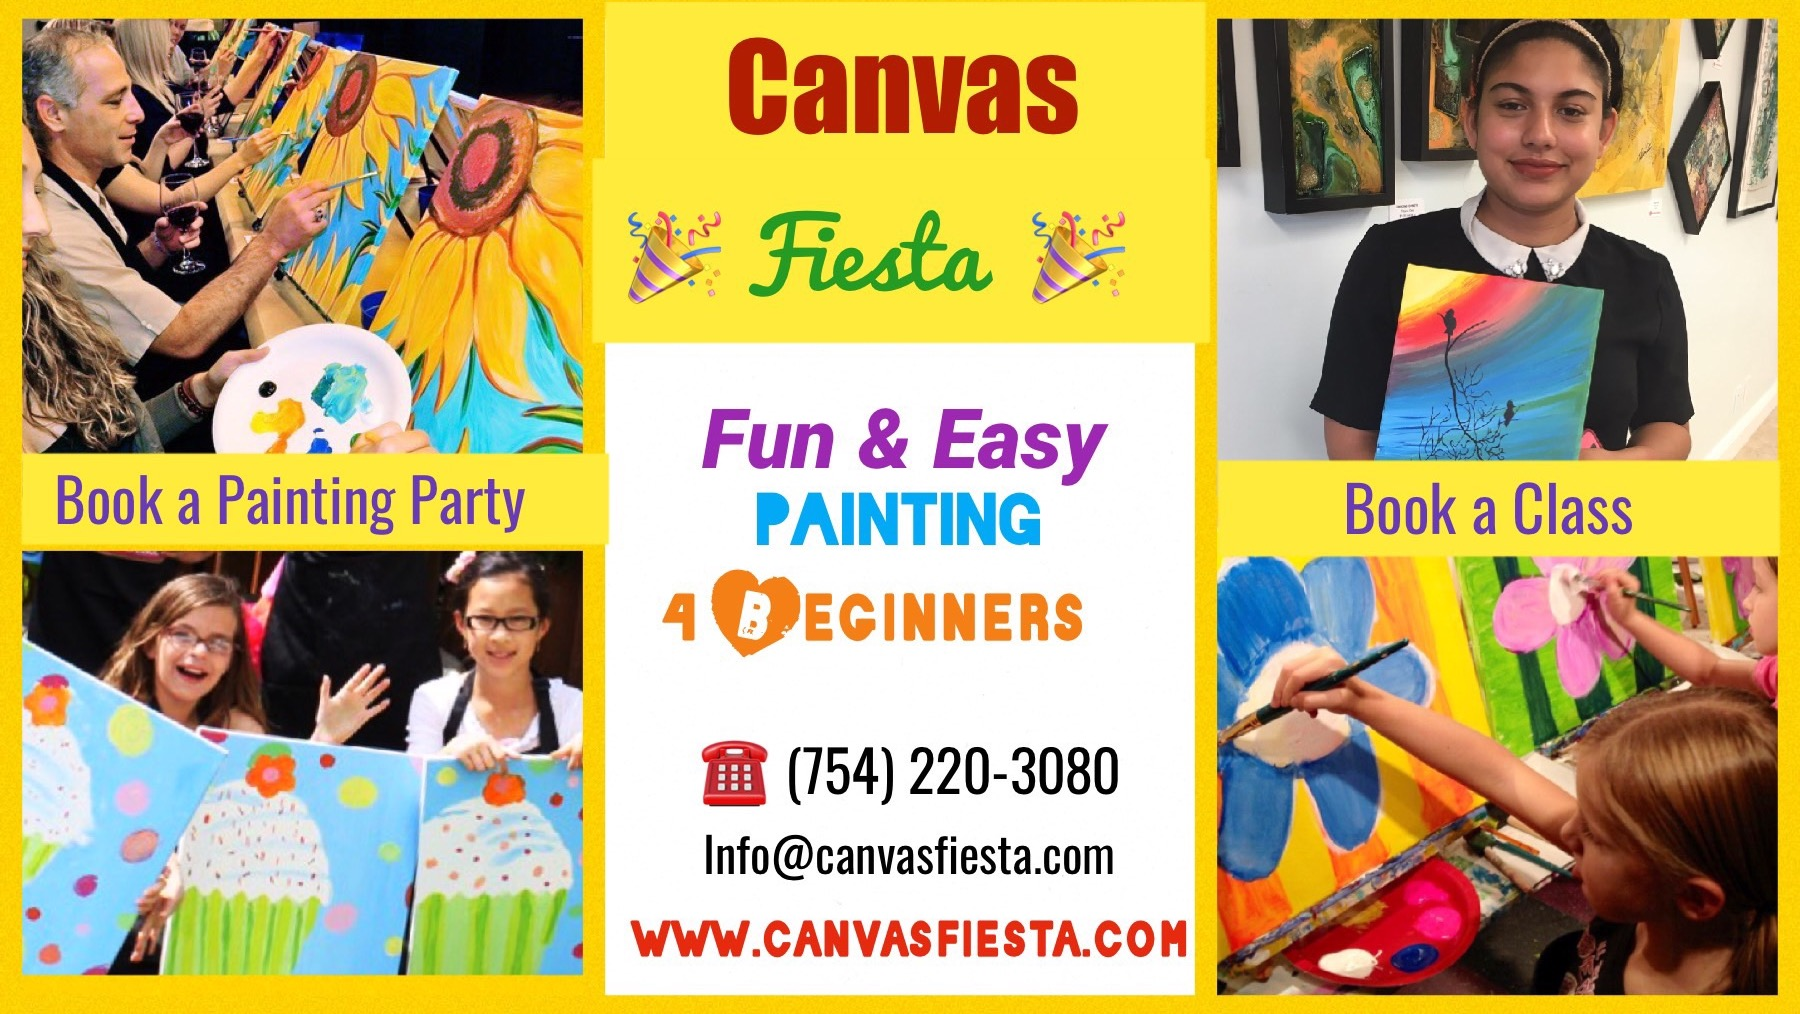 Painting with Canvas Fiesta